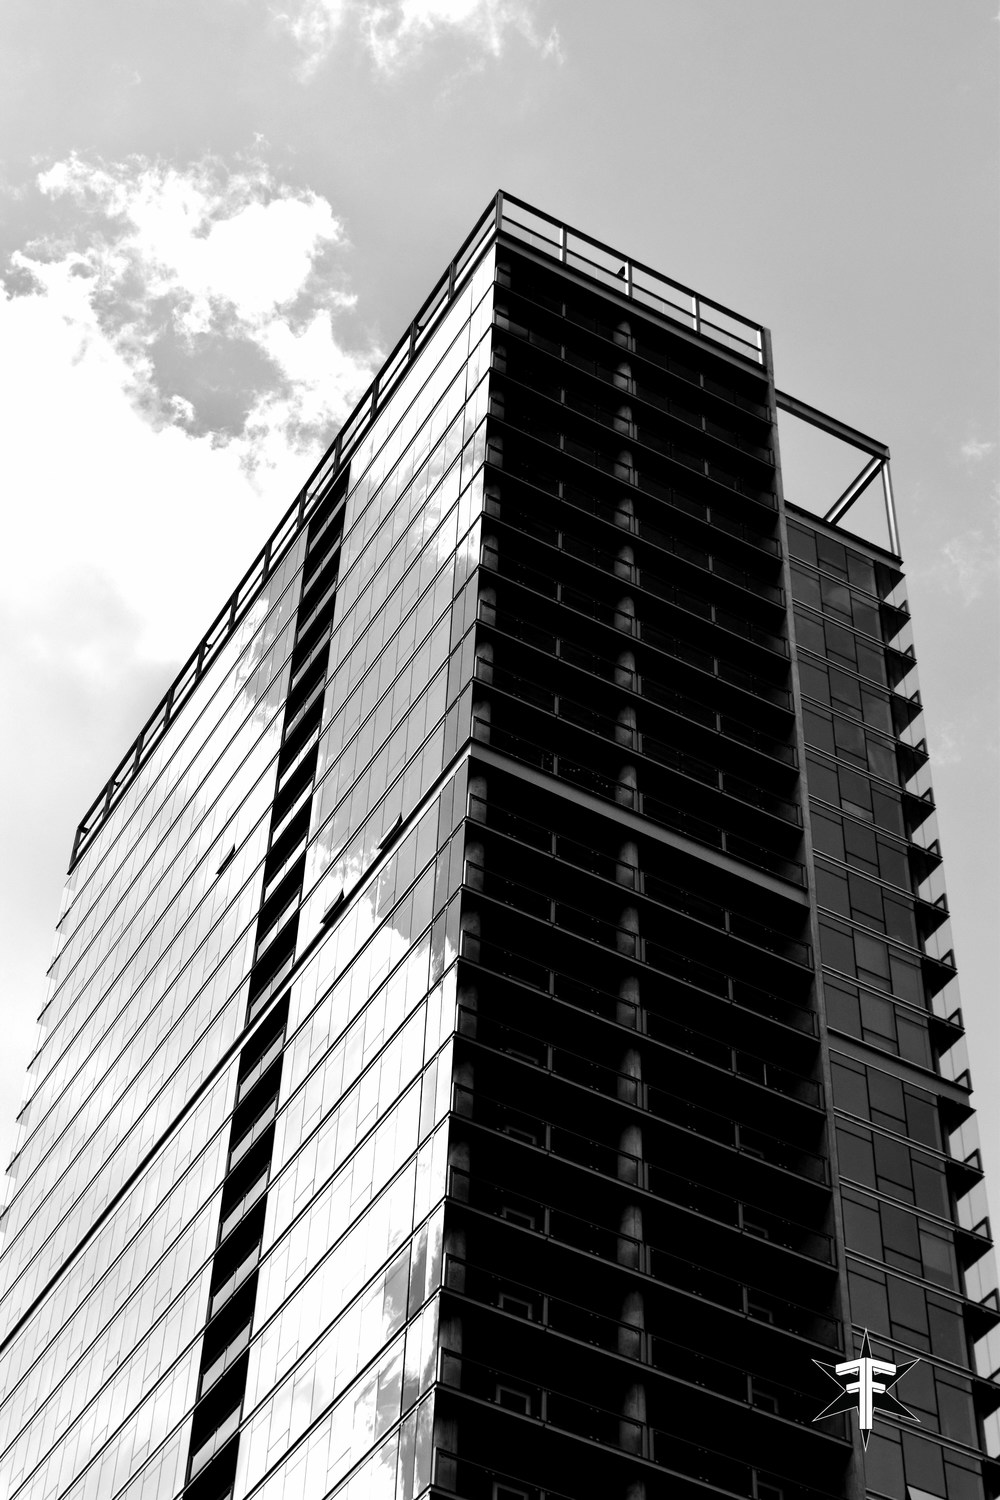 chicago architecture eric formato photography design arquitectura architettura buildings skyscraper skyscrapers-137.jpg